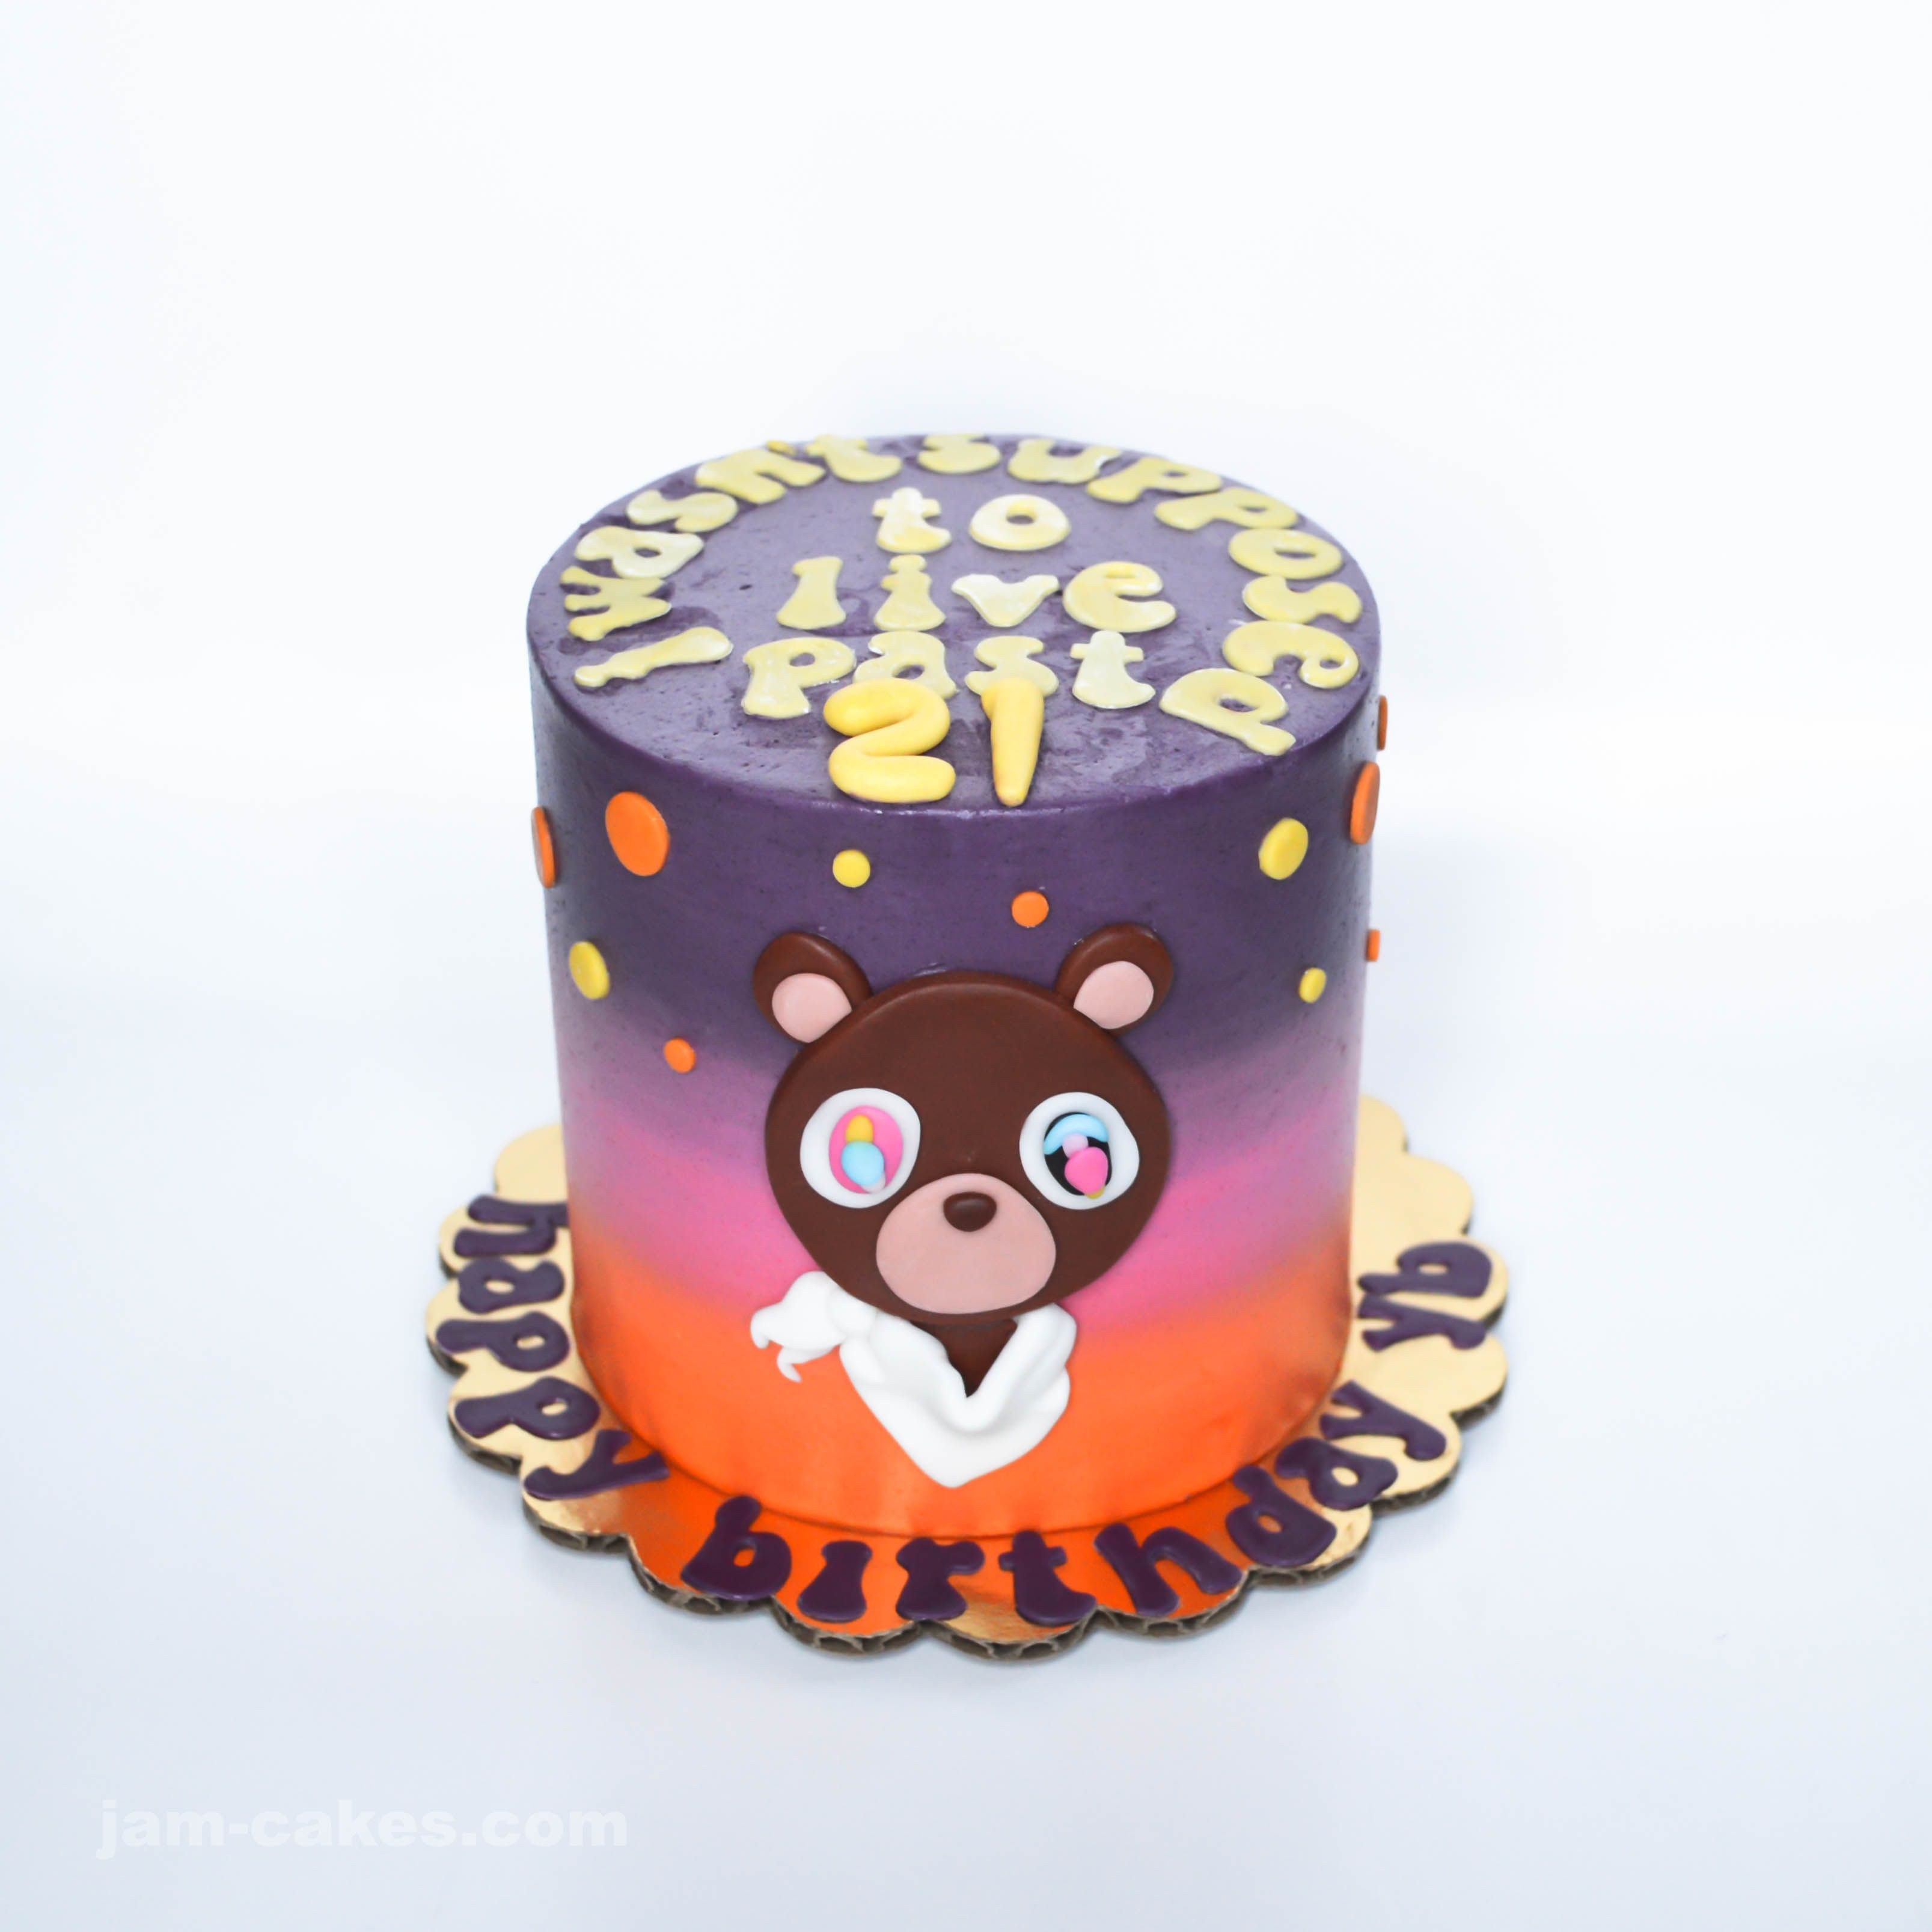 Kanye West Drop Out Bear Themed Mini Cake Cake 18th Birthday Cake Kids Cake